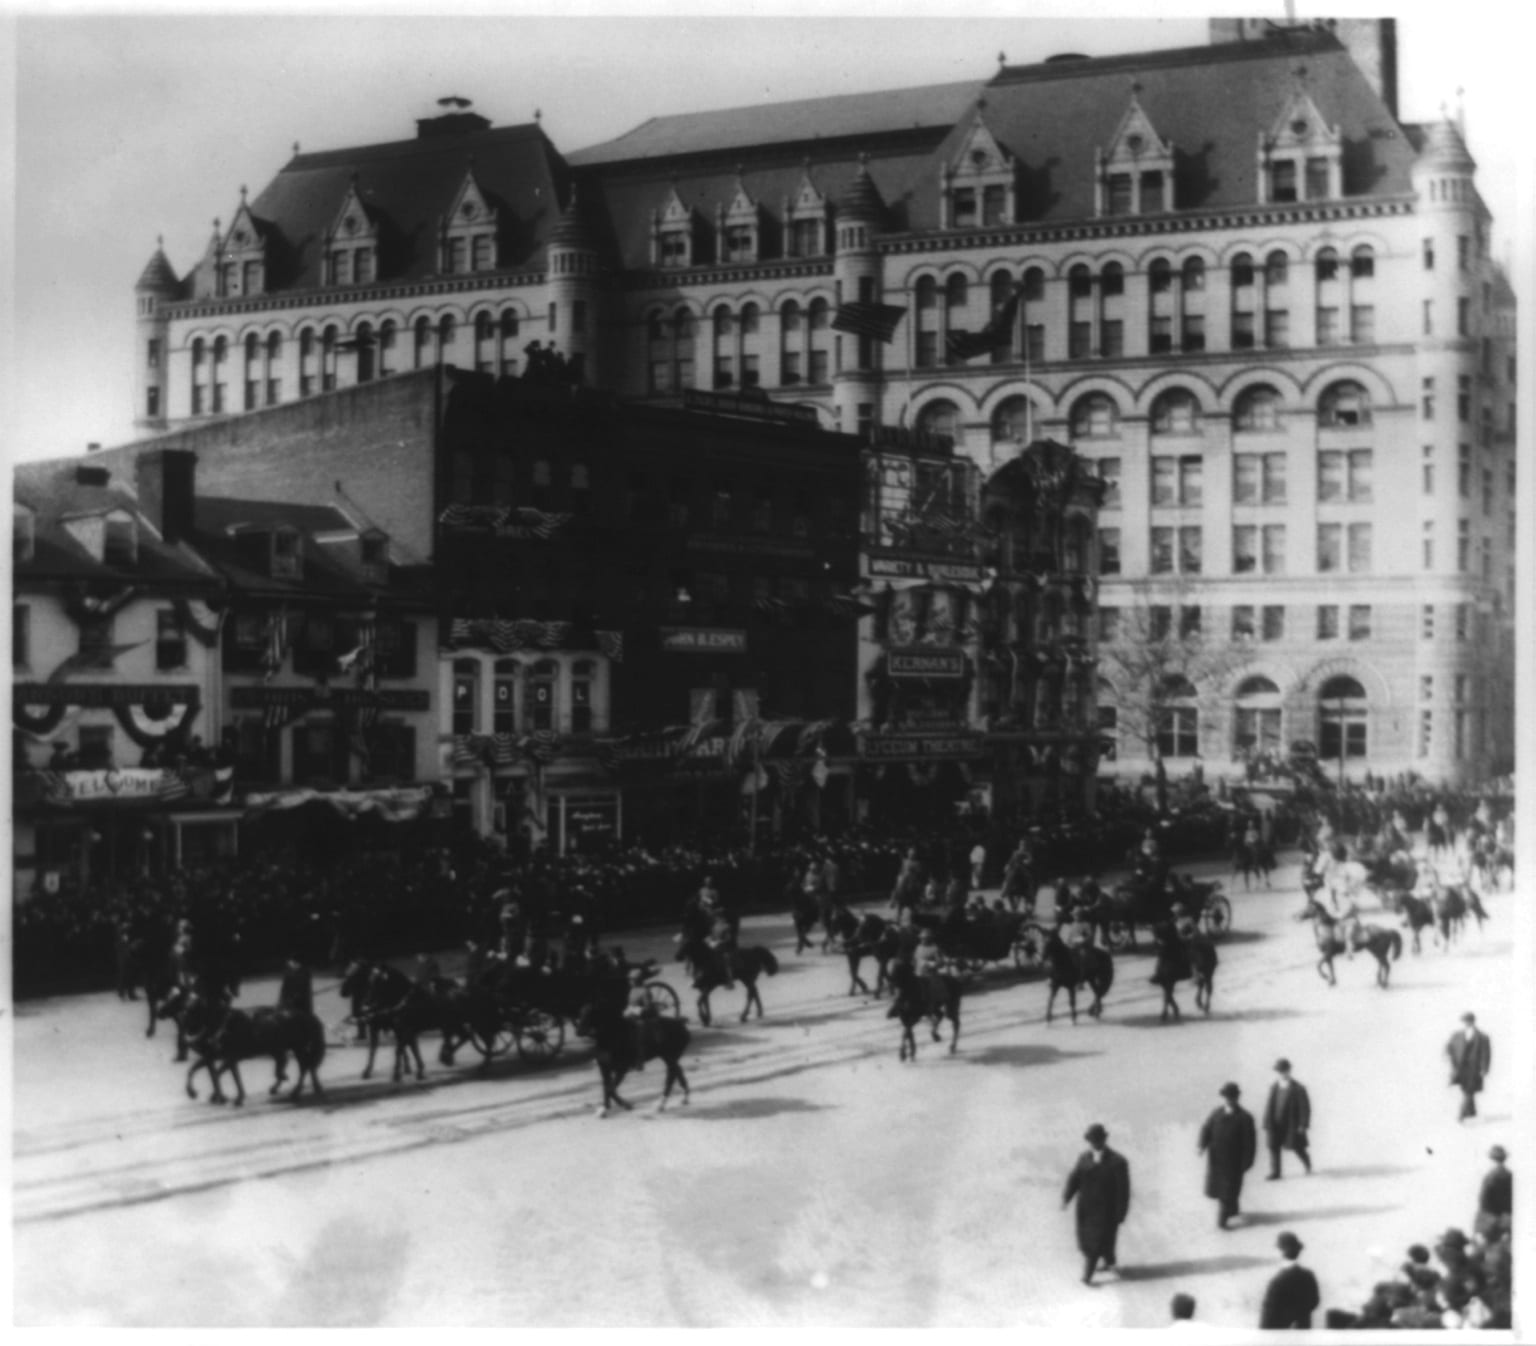 President Theodore Roosevelt passing 10th Street and Pennsylvania Avenue in inauguration parade on way to the Capitol